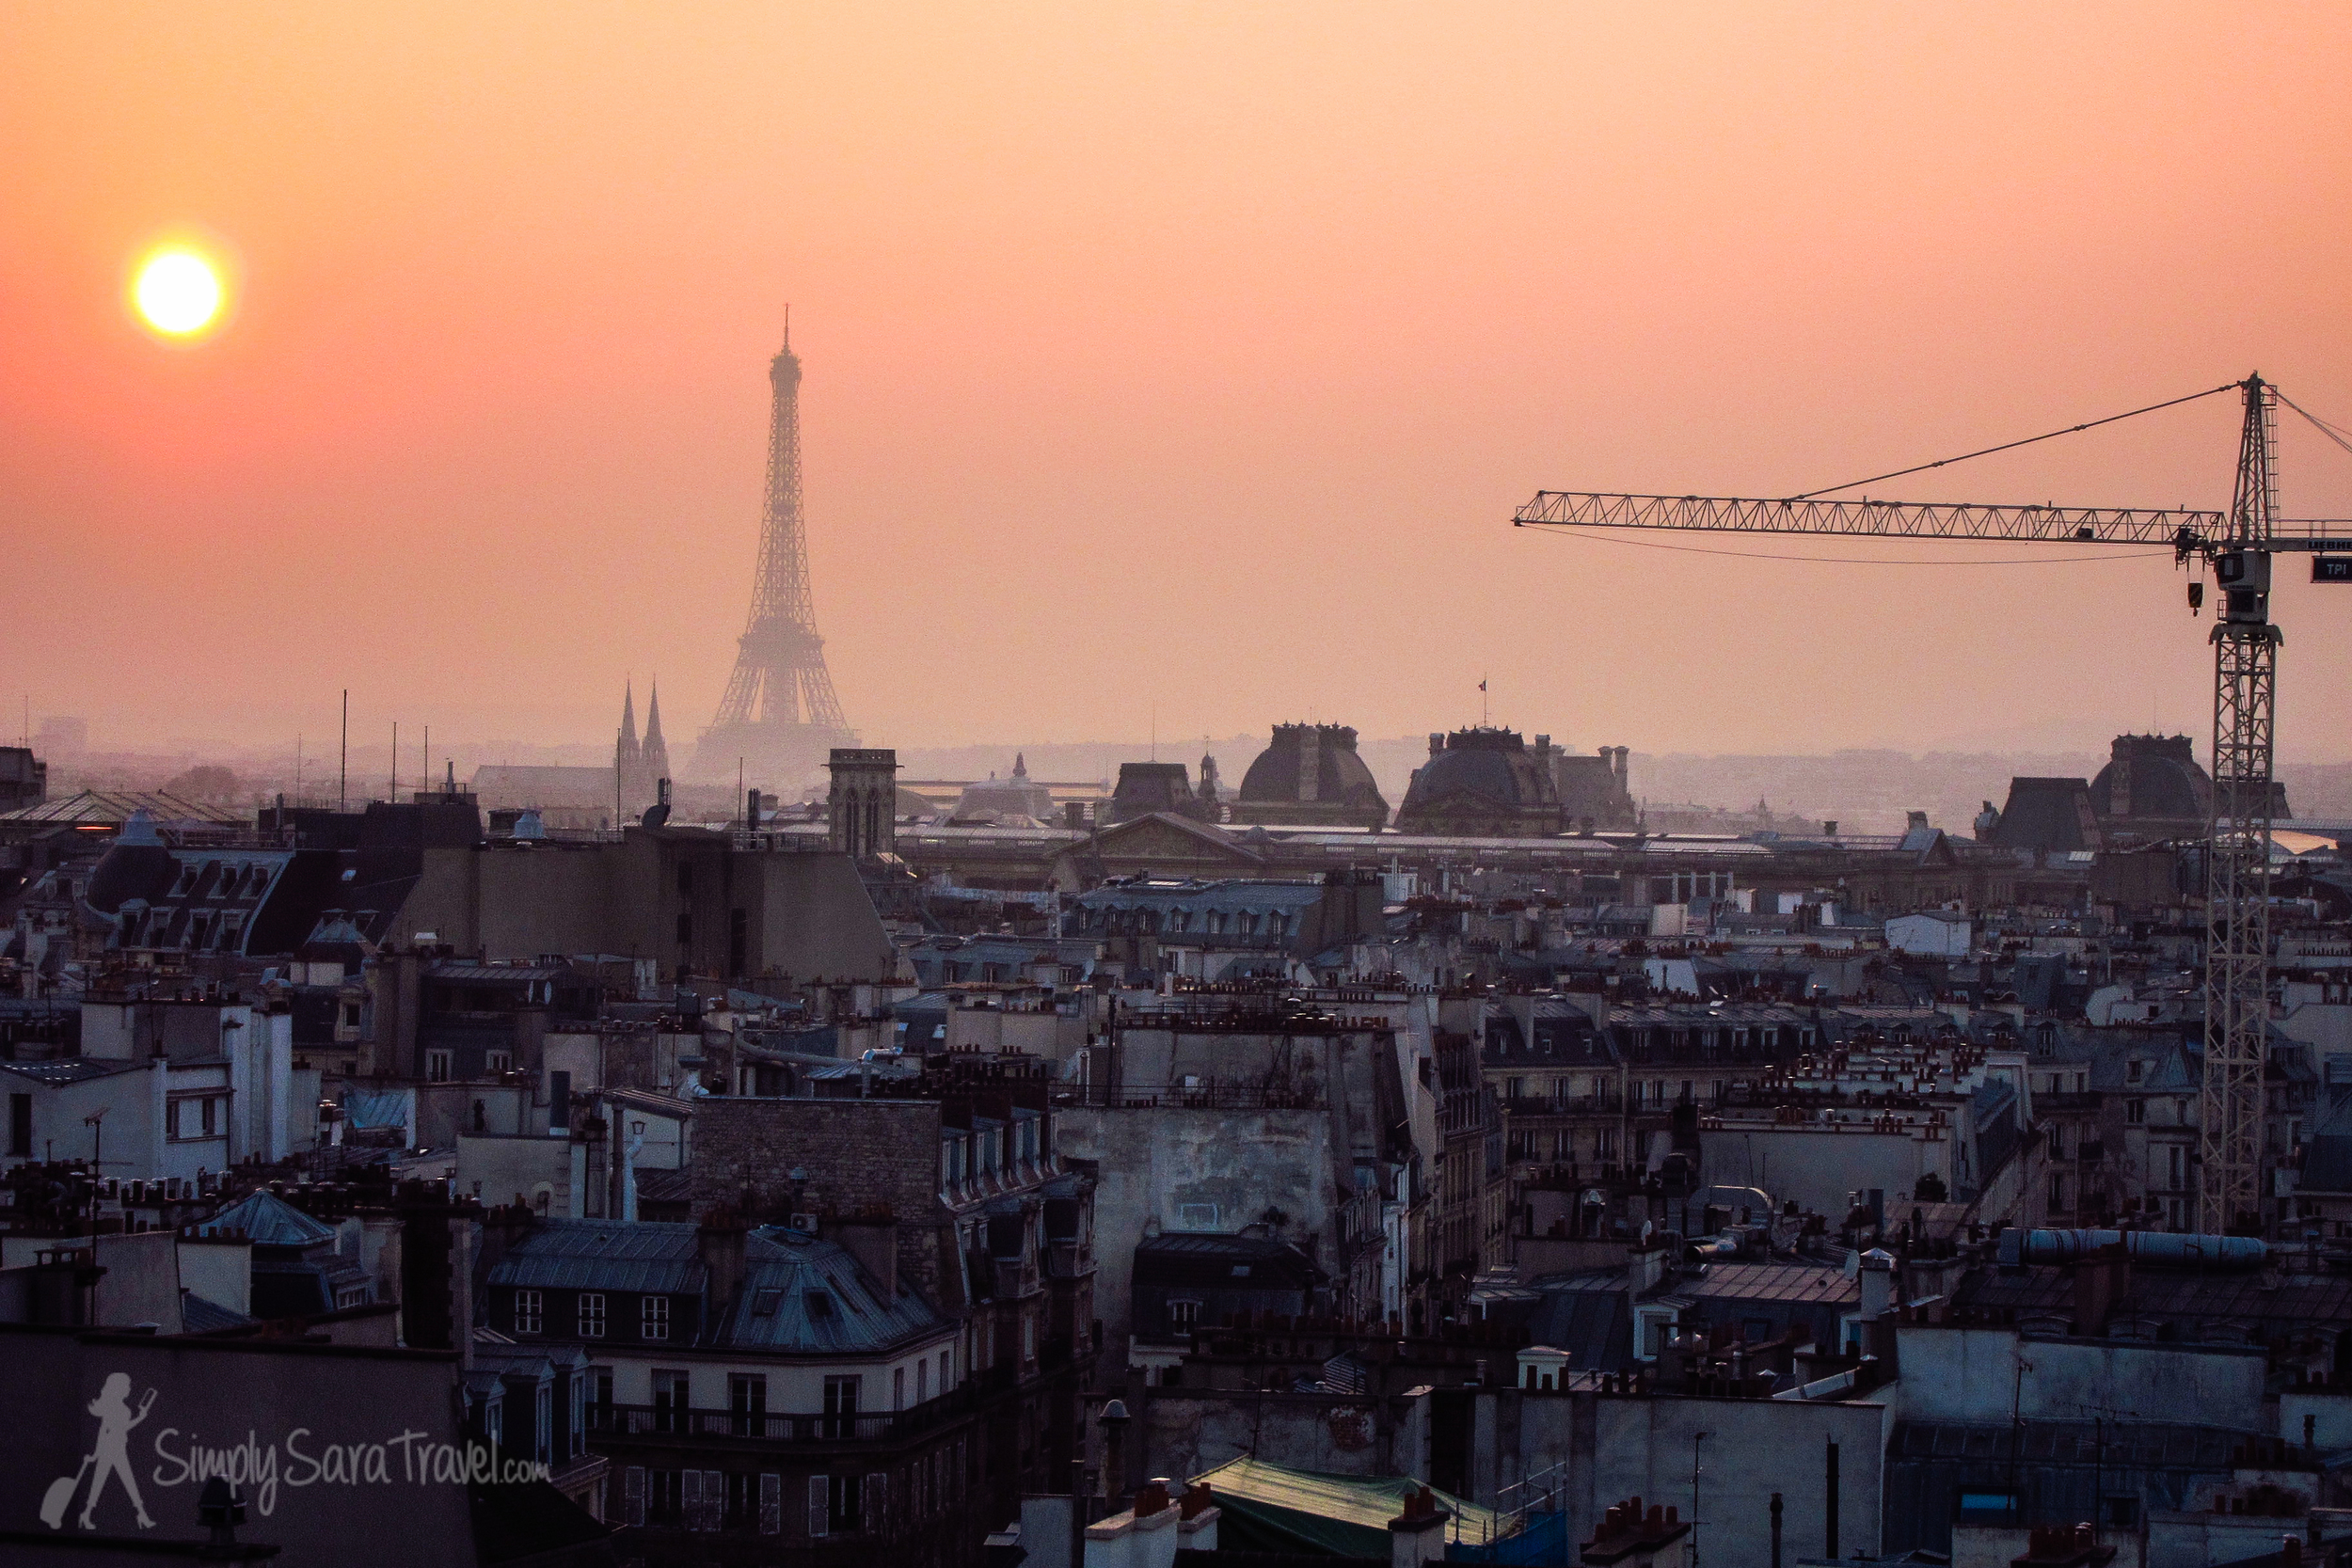 The Centre Pompidou is among my favorite museums in Paris, and one thing I love about it is running up to the top floor in time to see a sunset. I included another sunset from the same view in my  2013 best-of compilation  - so which one should make the wall?